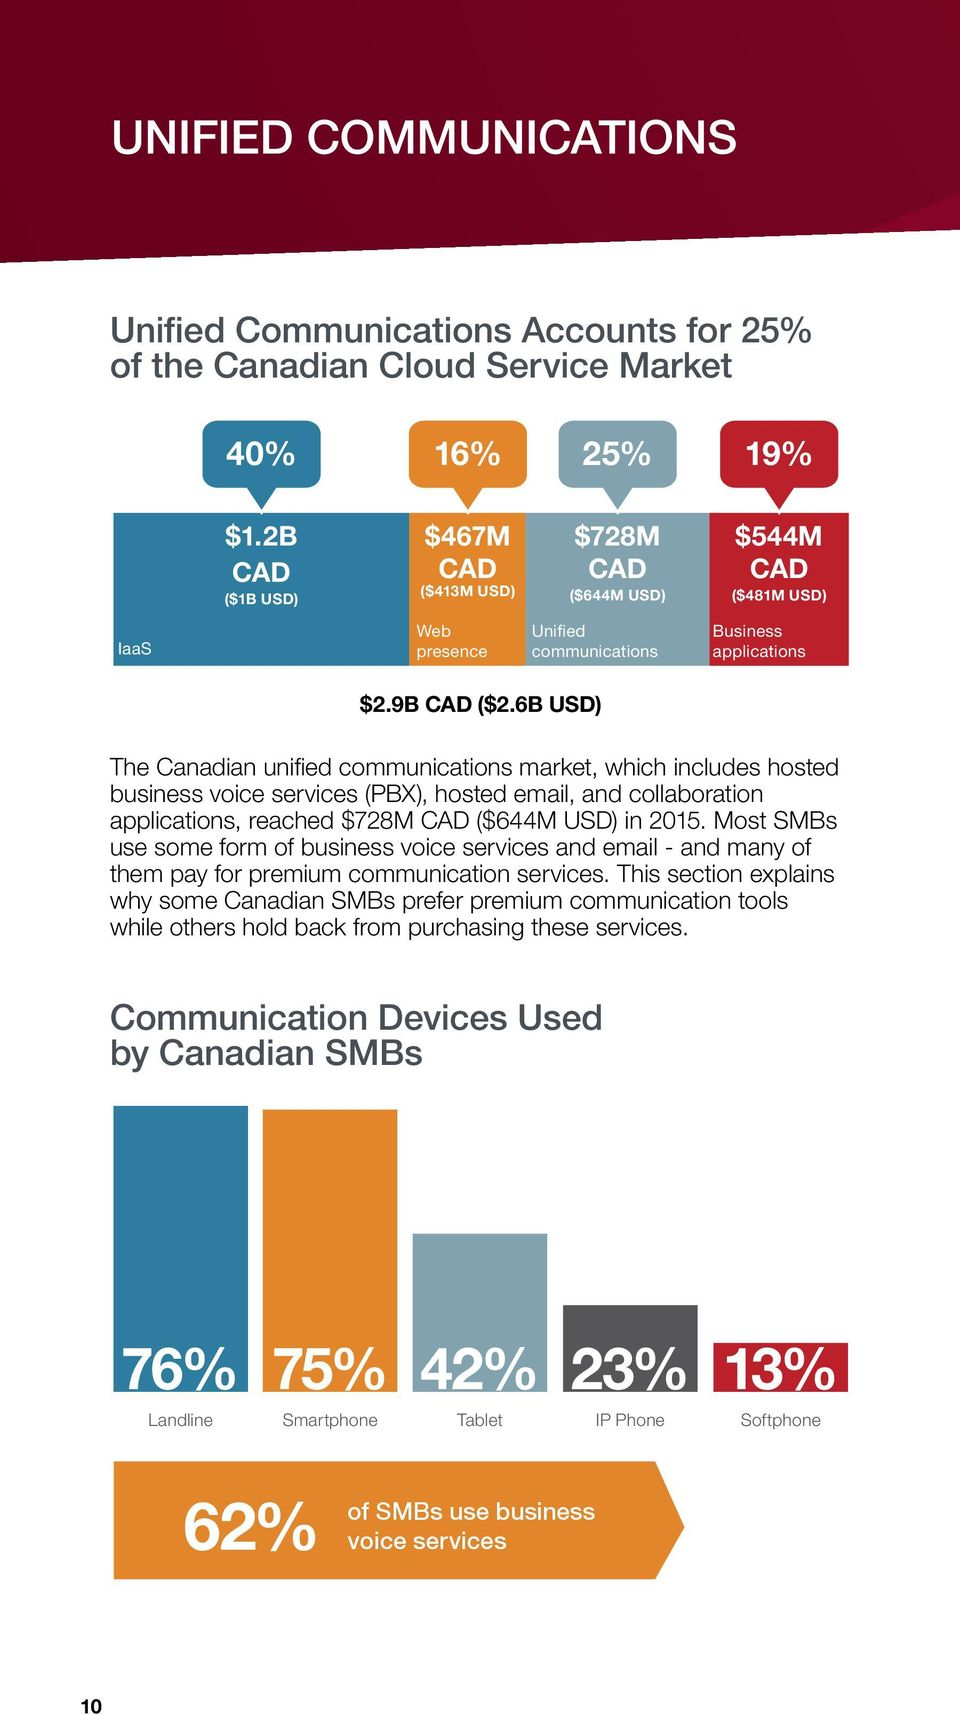 6B USD) The Canadian unified communications market, which includes hosted business voice services (PBX), hosted email, and collaboration applications, reached $728M ($644M USD) in 2015.